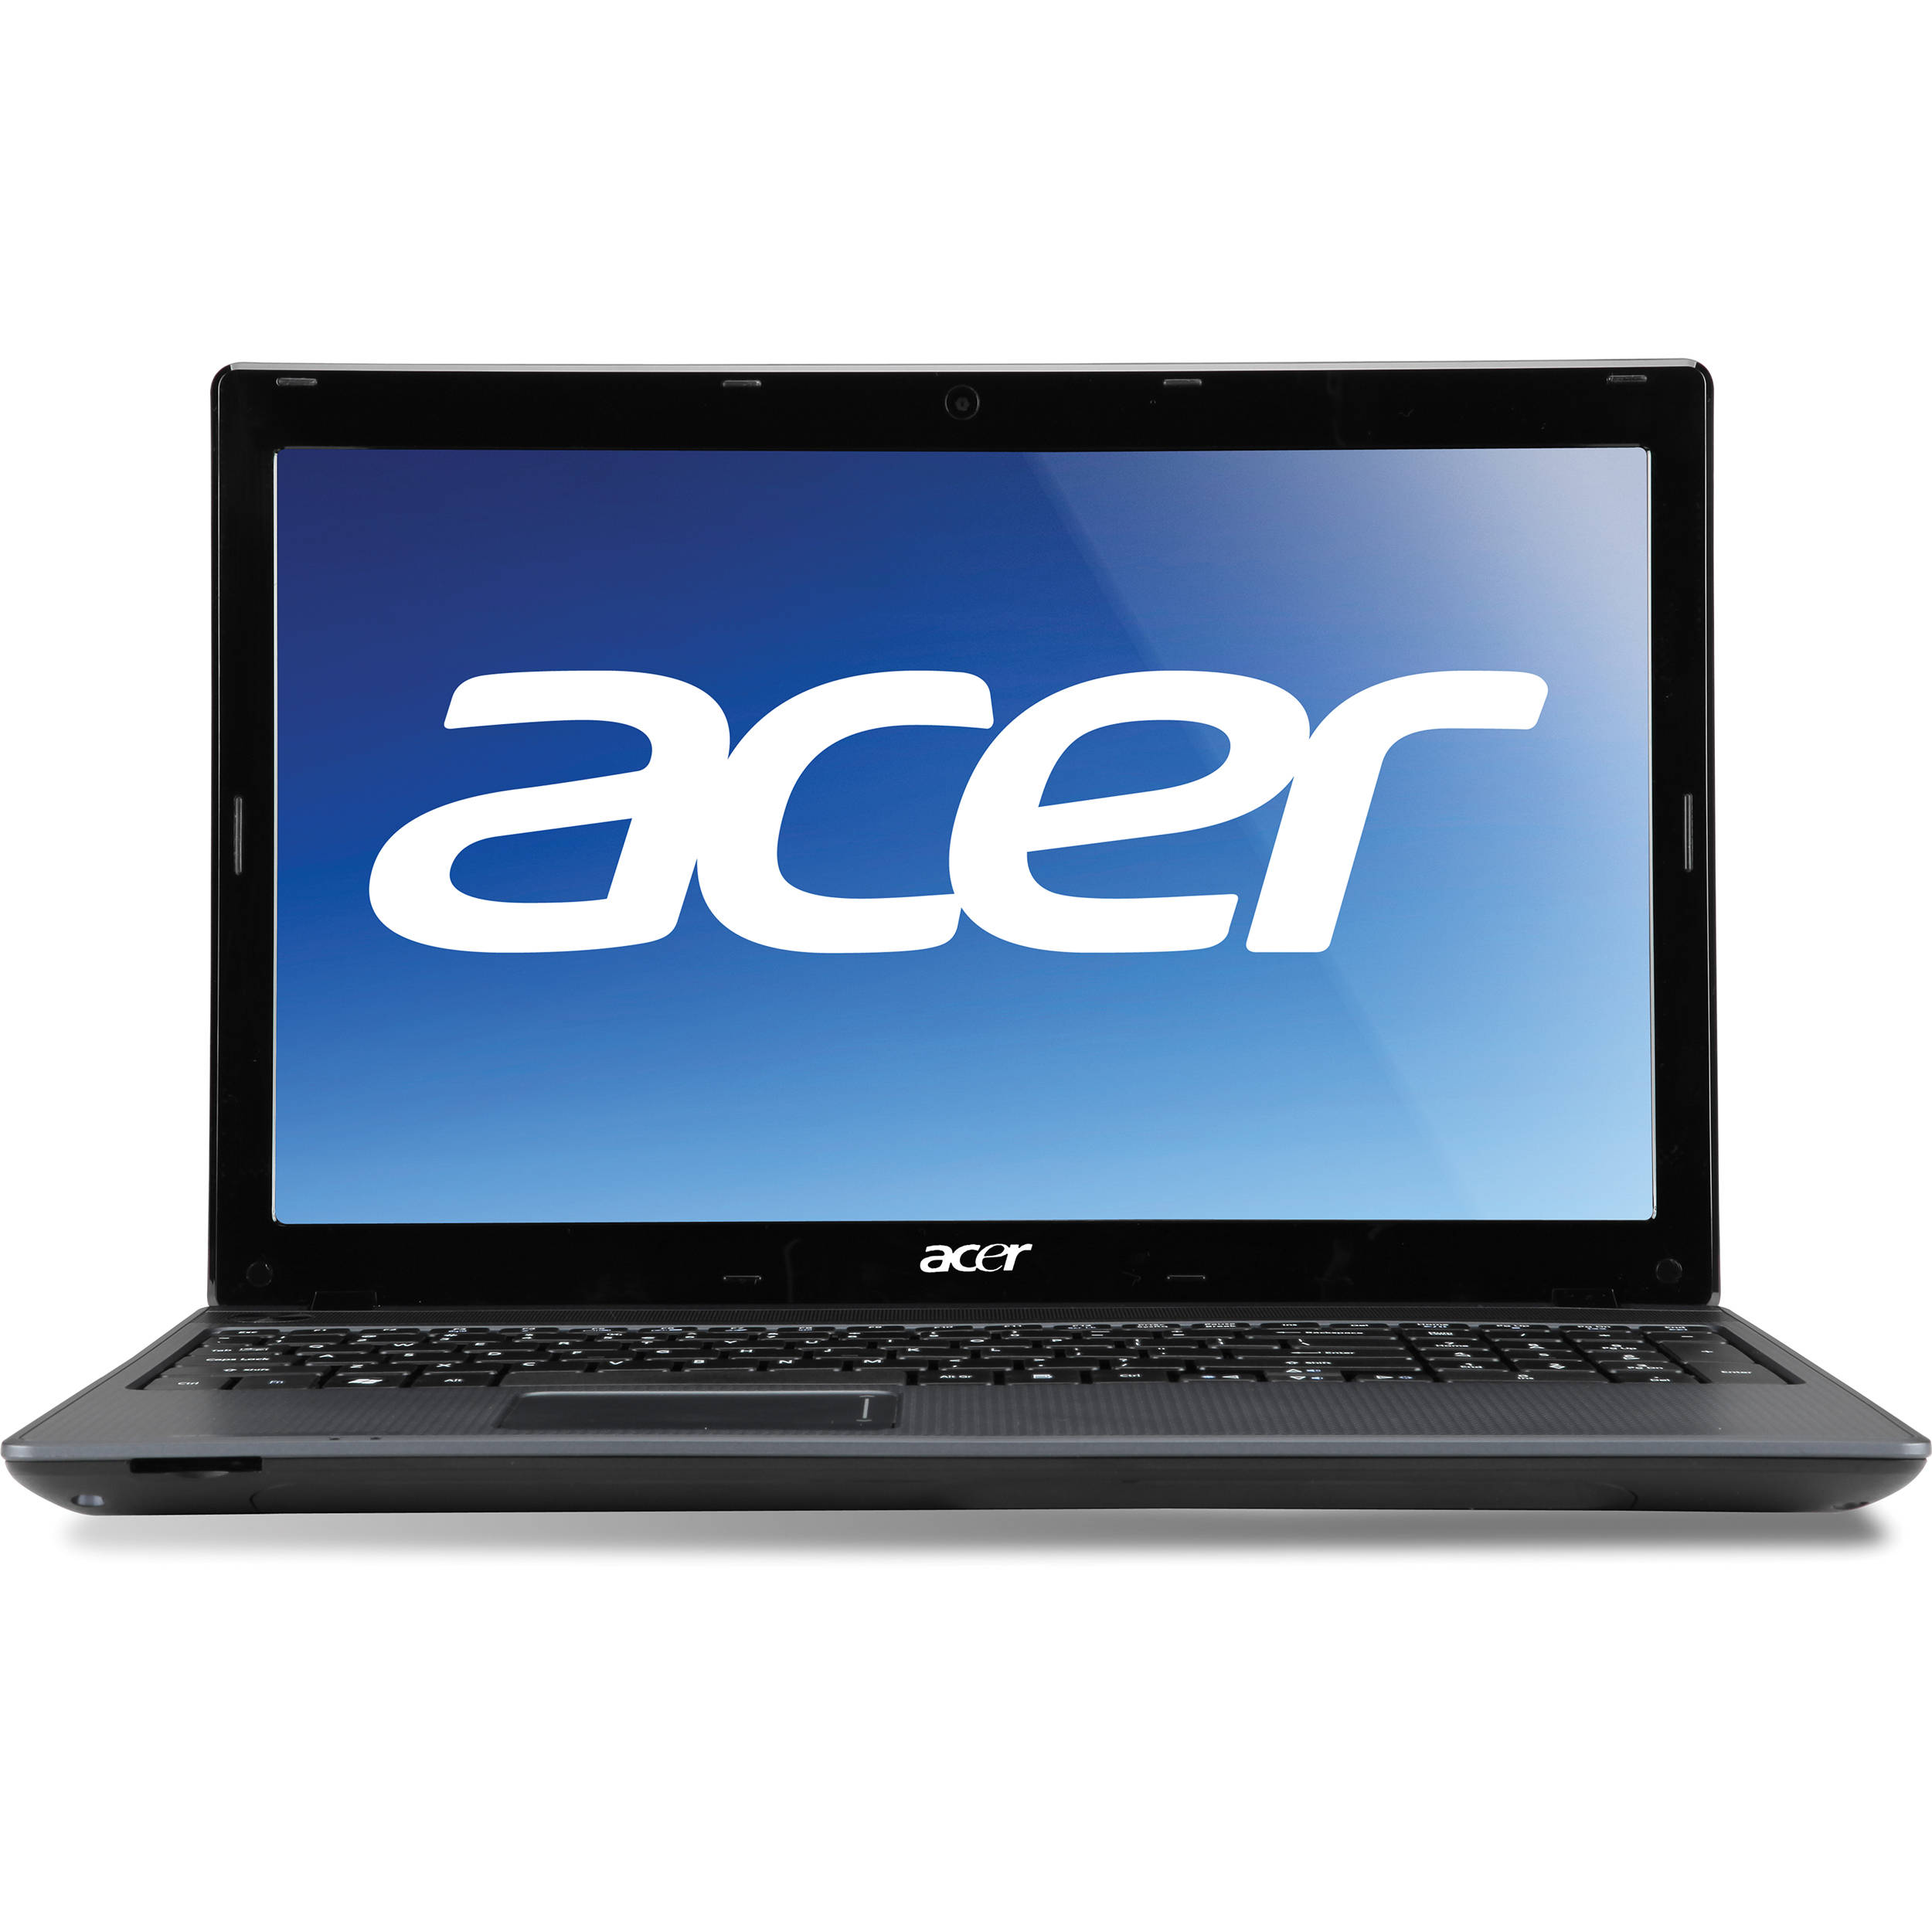 controleur ethernet acer aspire 5733z